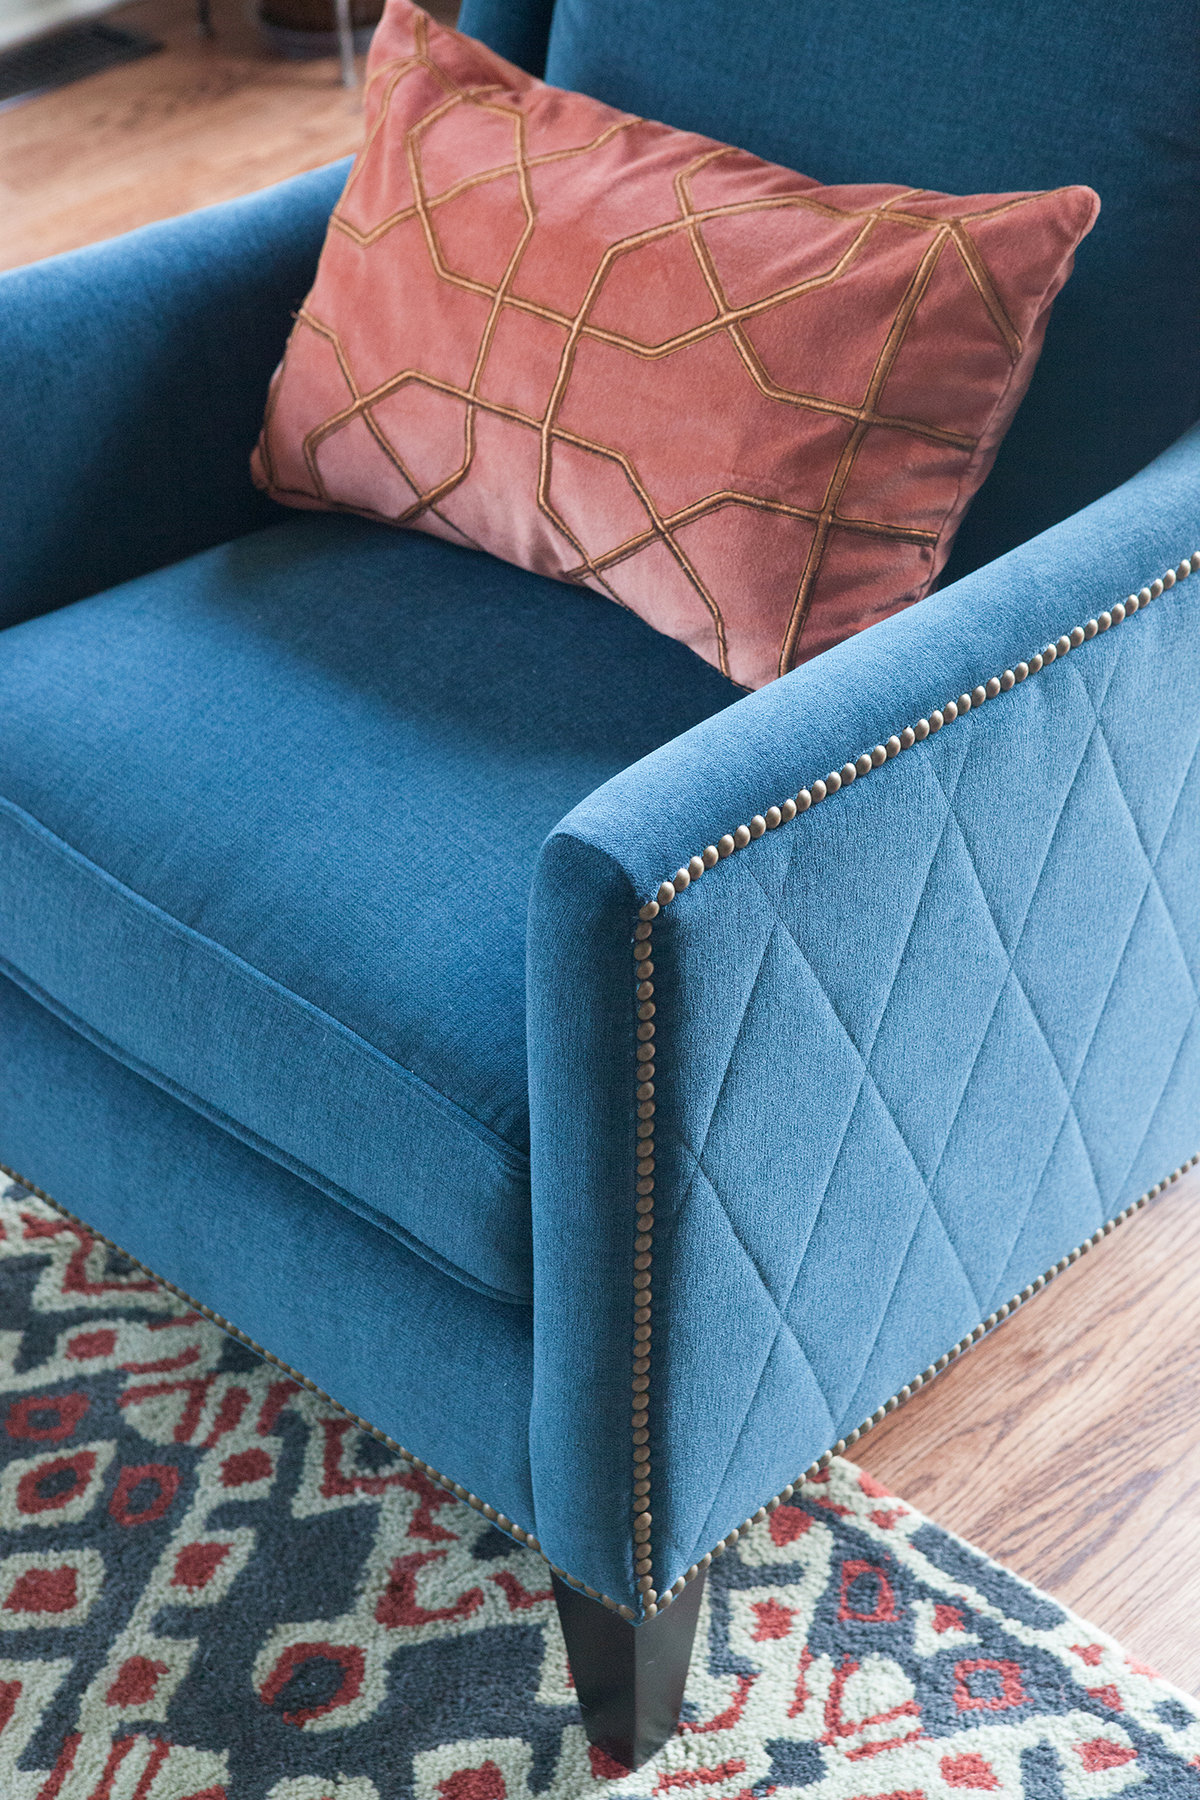 Blue and Muted Coral Interior Design by SG23 Design | Photo by Kate Raines of Plate 3 Photography